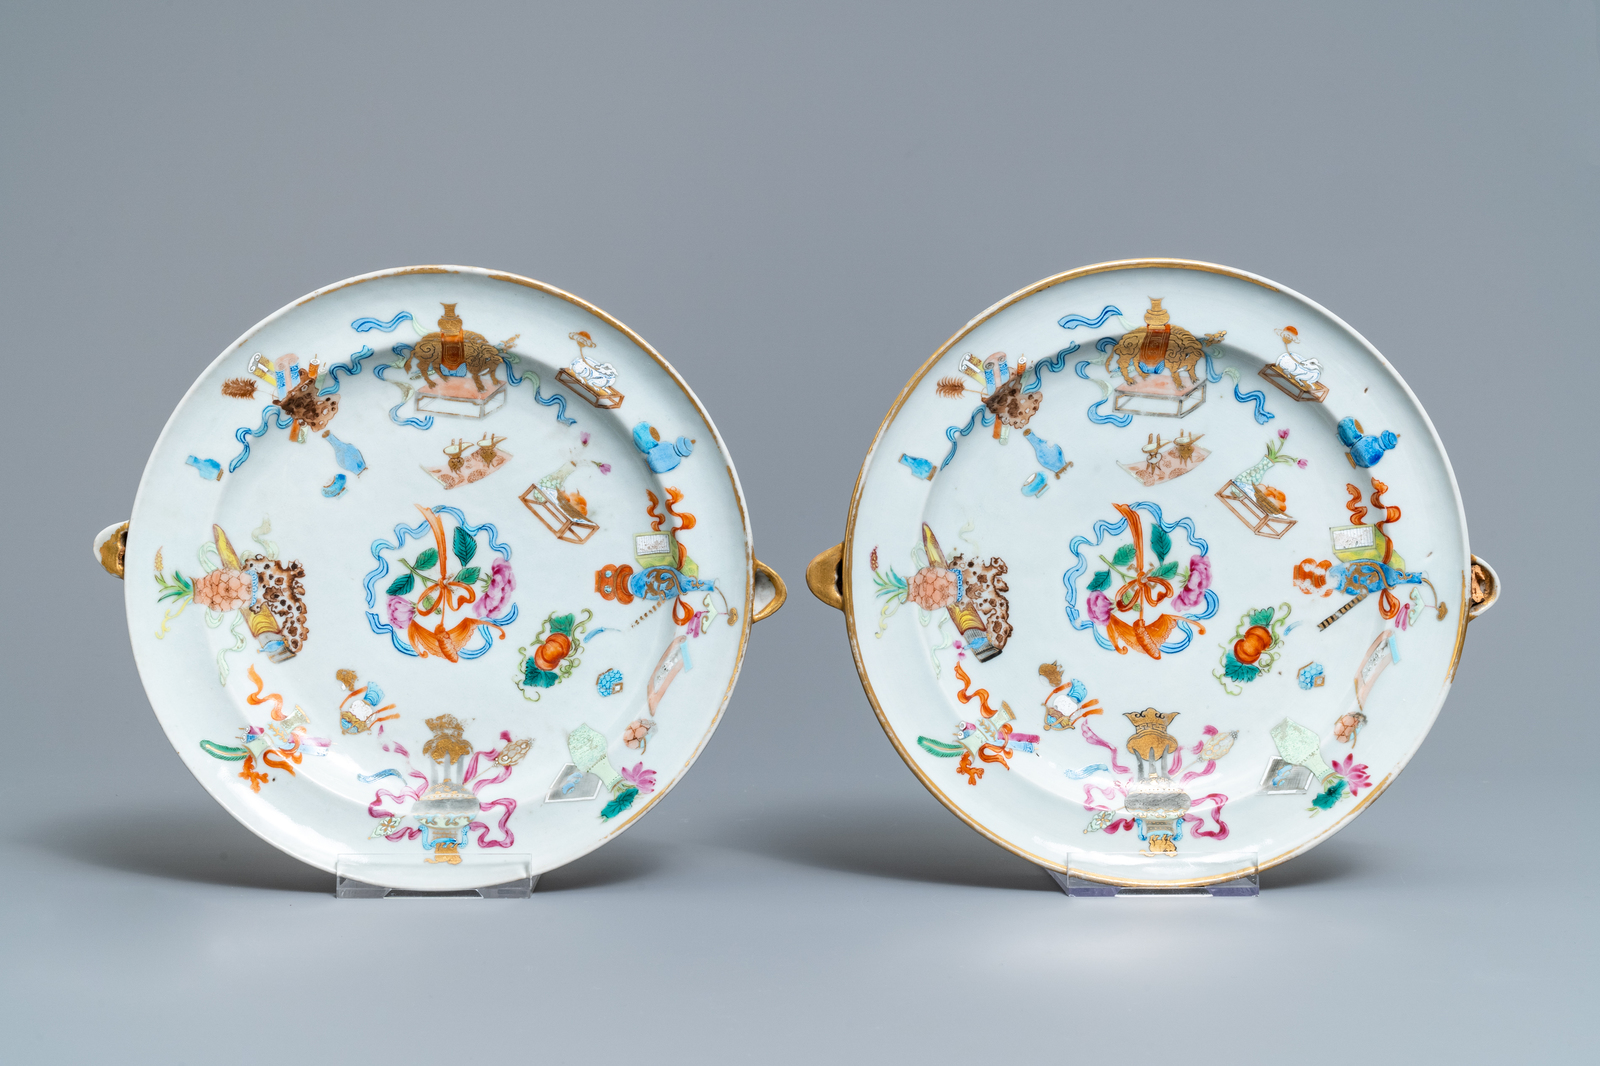 Lot 52 - A 9-piece Chinese famille rose service with antiquities design, Jiaqing/Daoguang